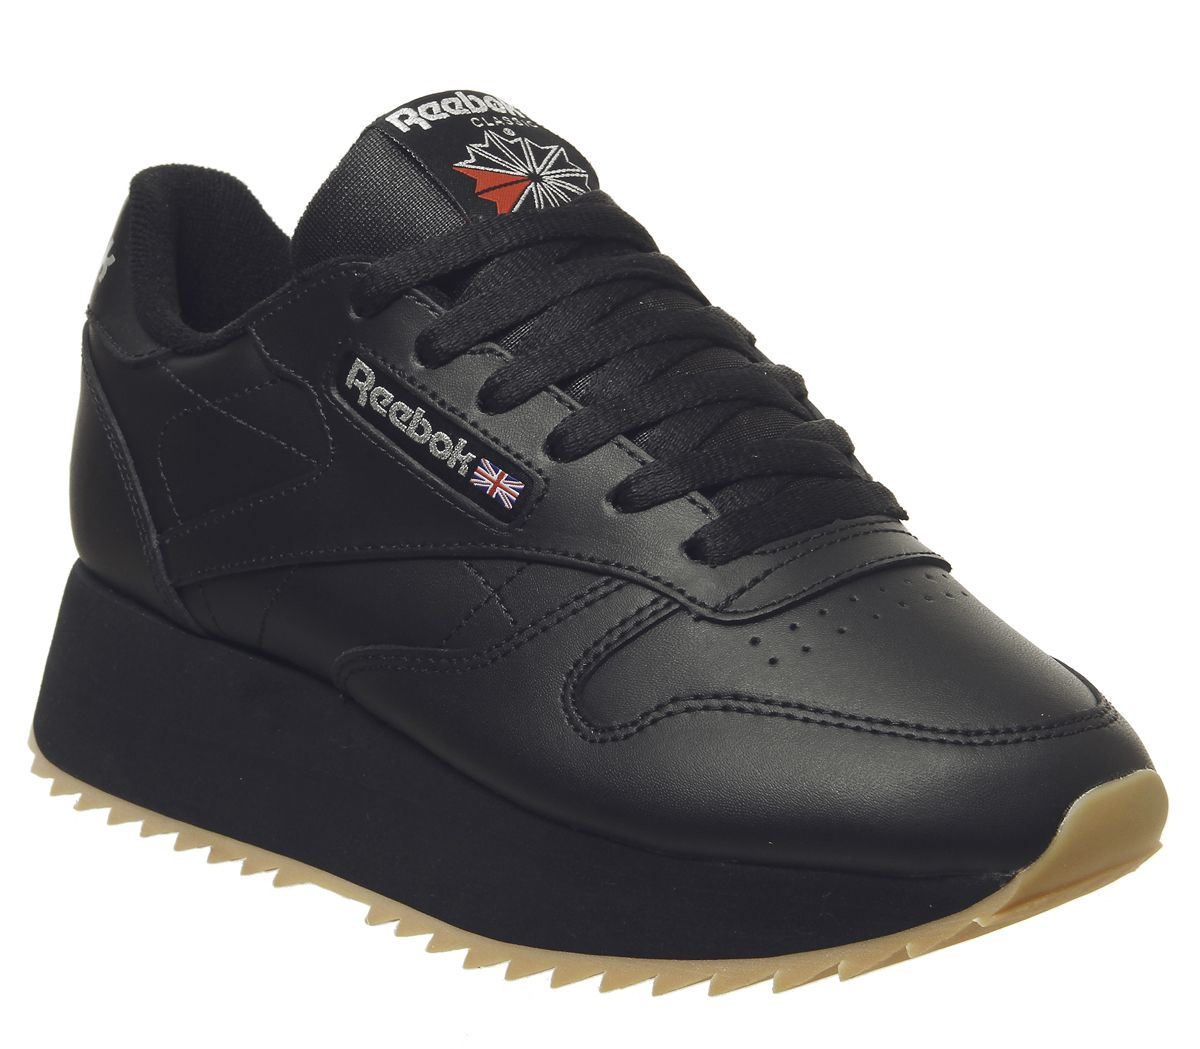 new product ee086 e1acf Sentinel Womens Reebok Classic Leather Double Trainers Black Gum Silver  Metallic Trainers